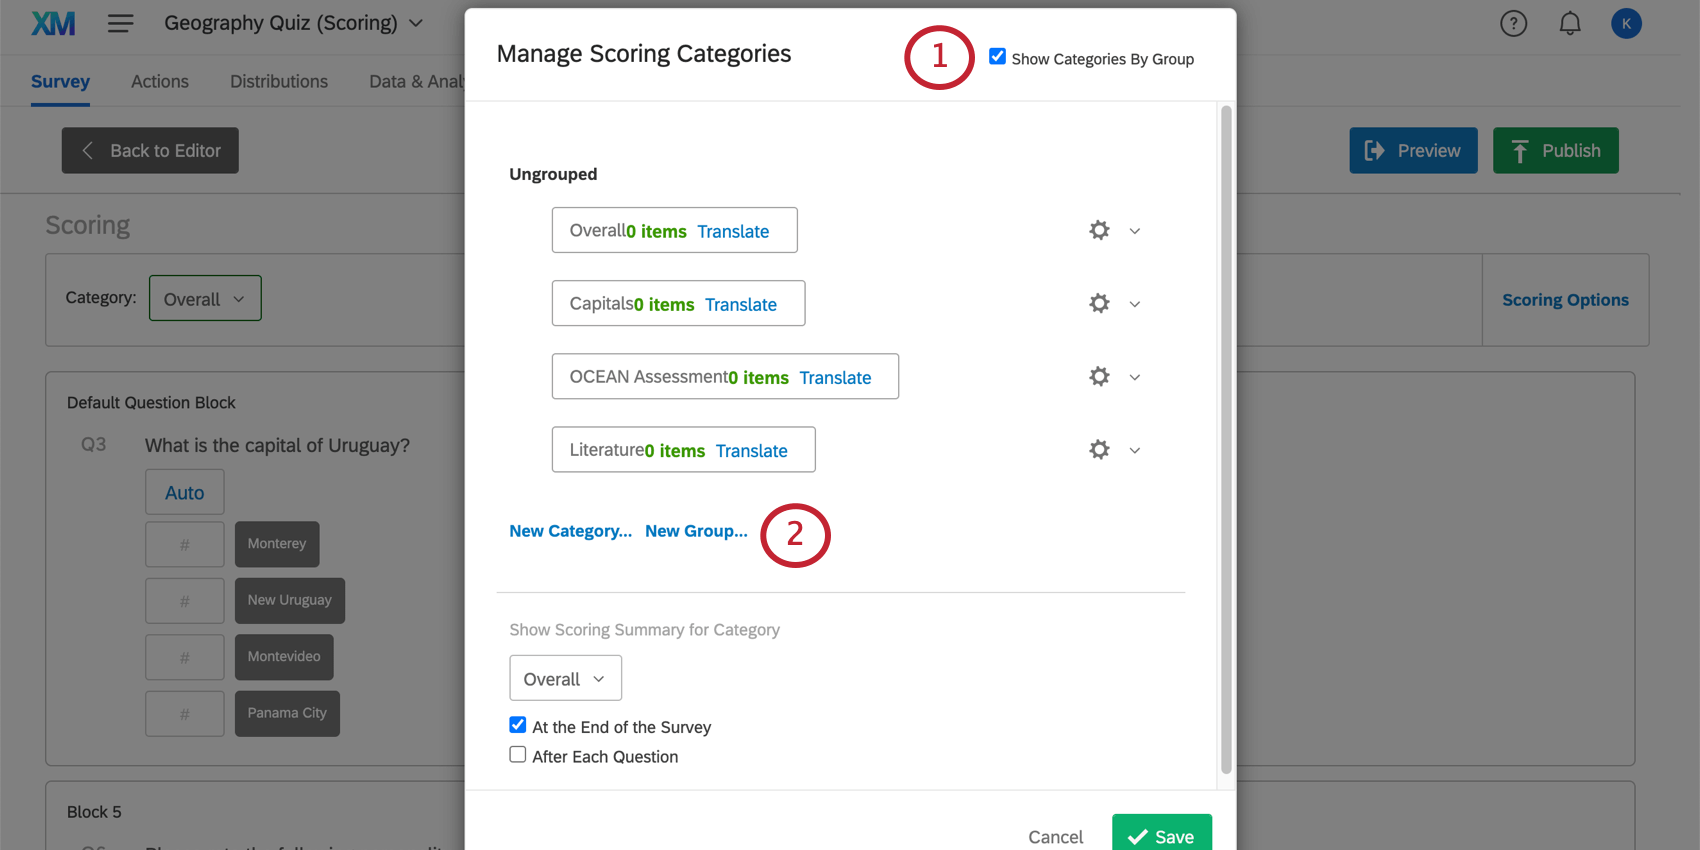 Show Categories by Group is selected in upper-rightmost corner of manage scoring categories window